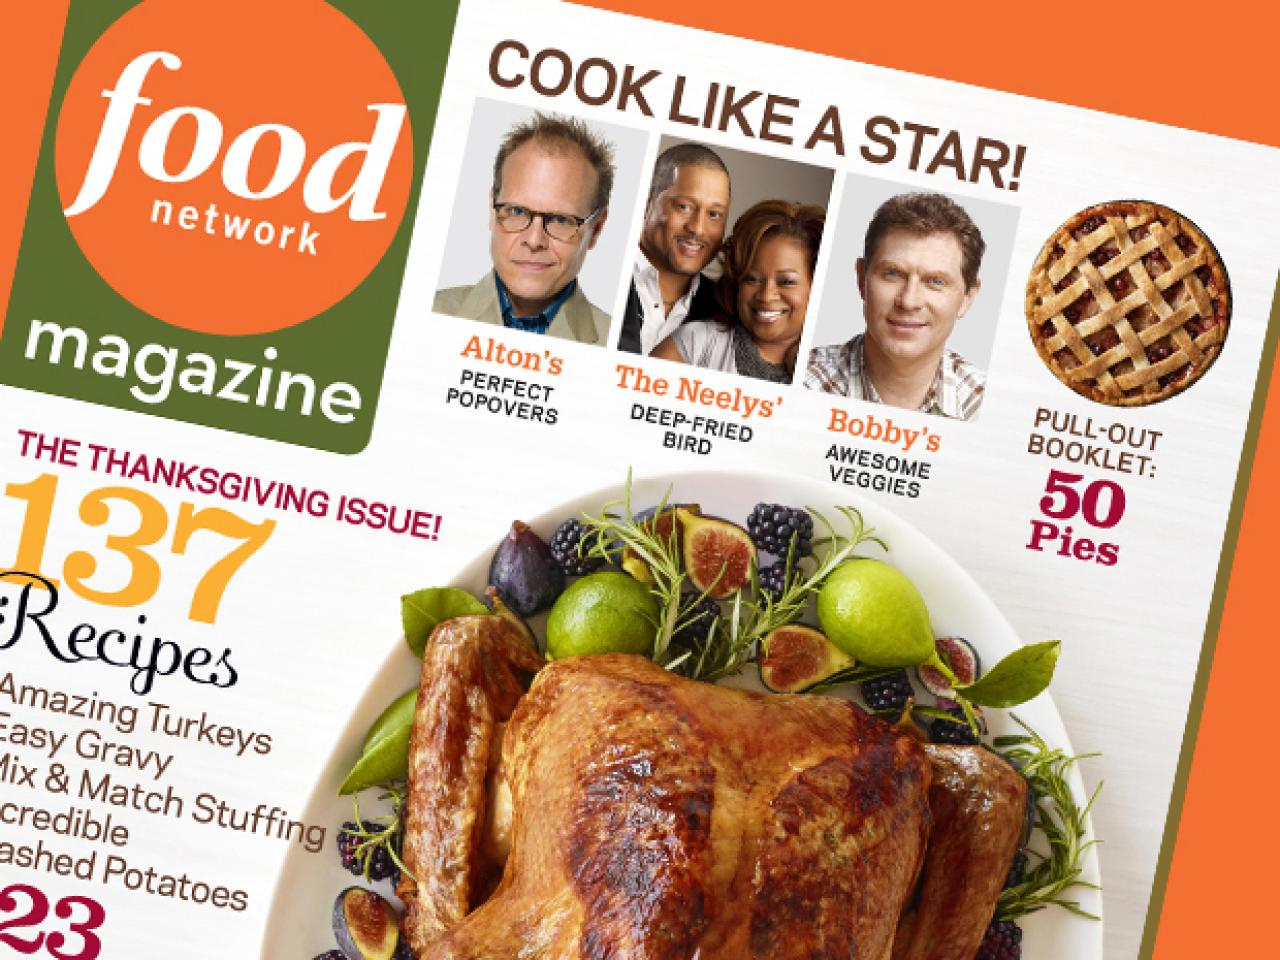 food network magazine november 2011 recipe index recipes and